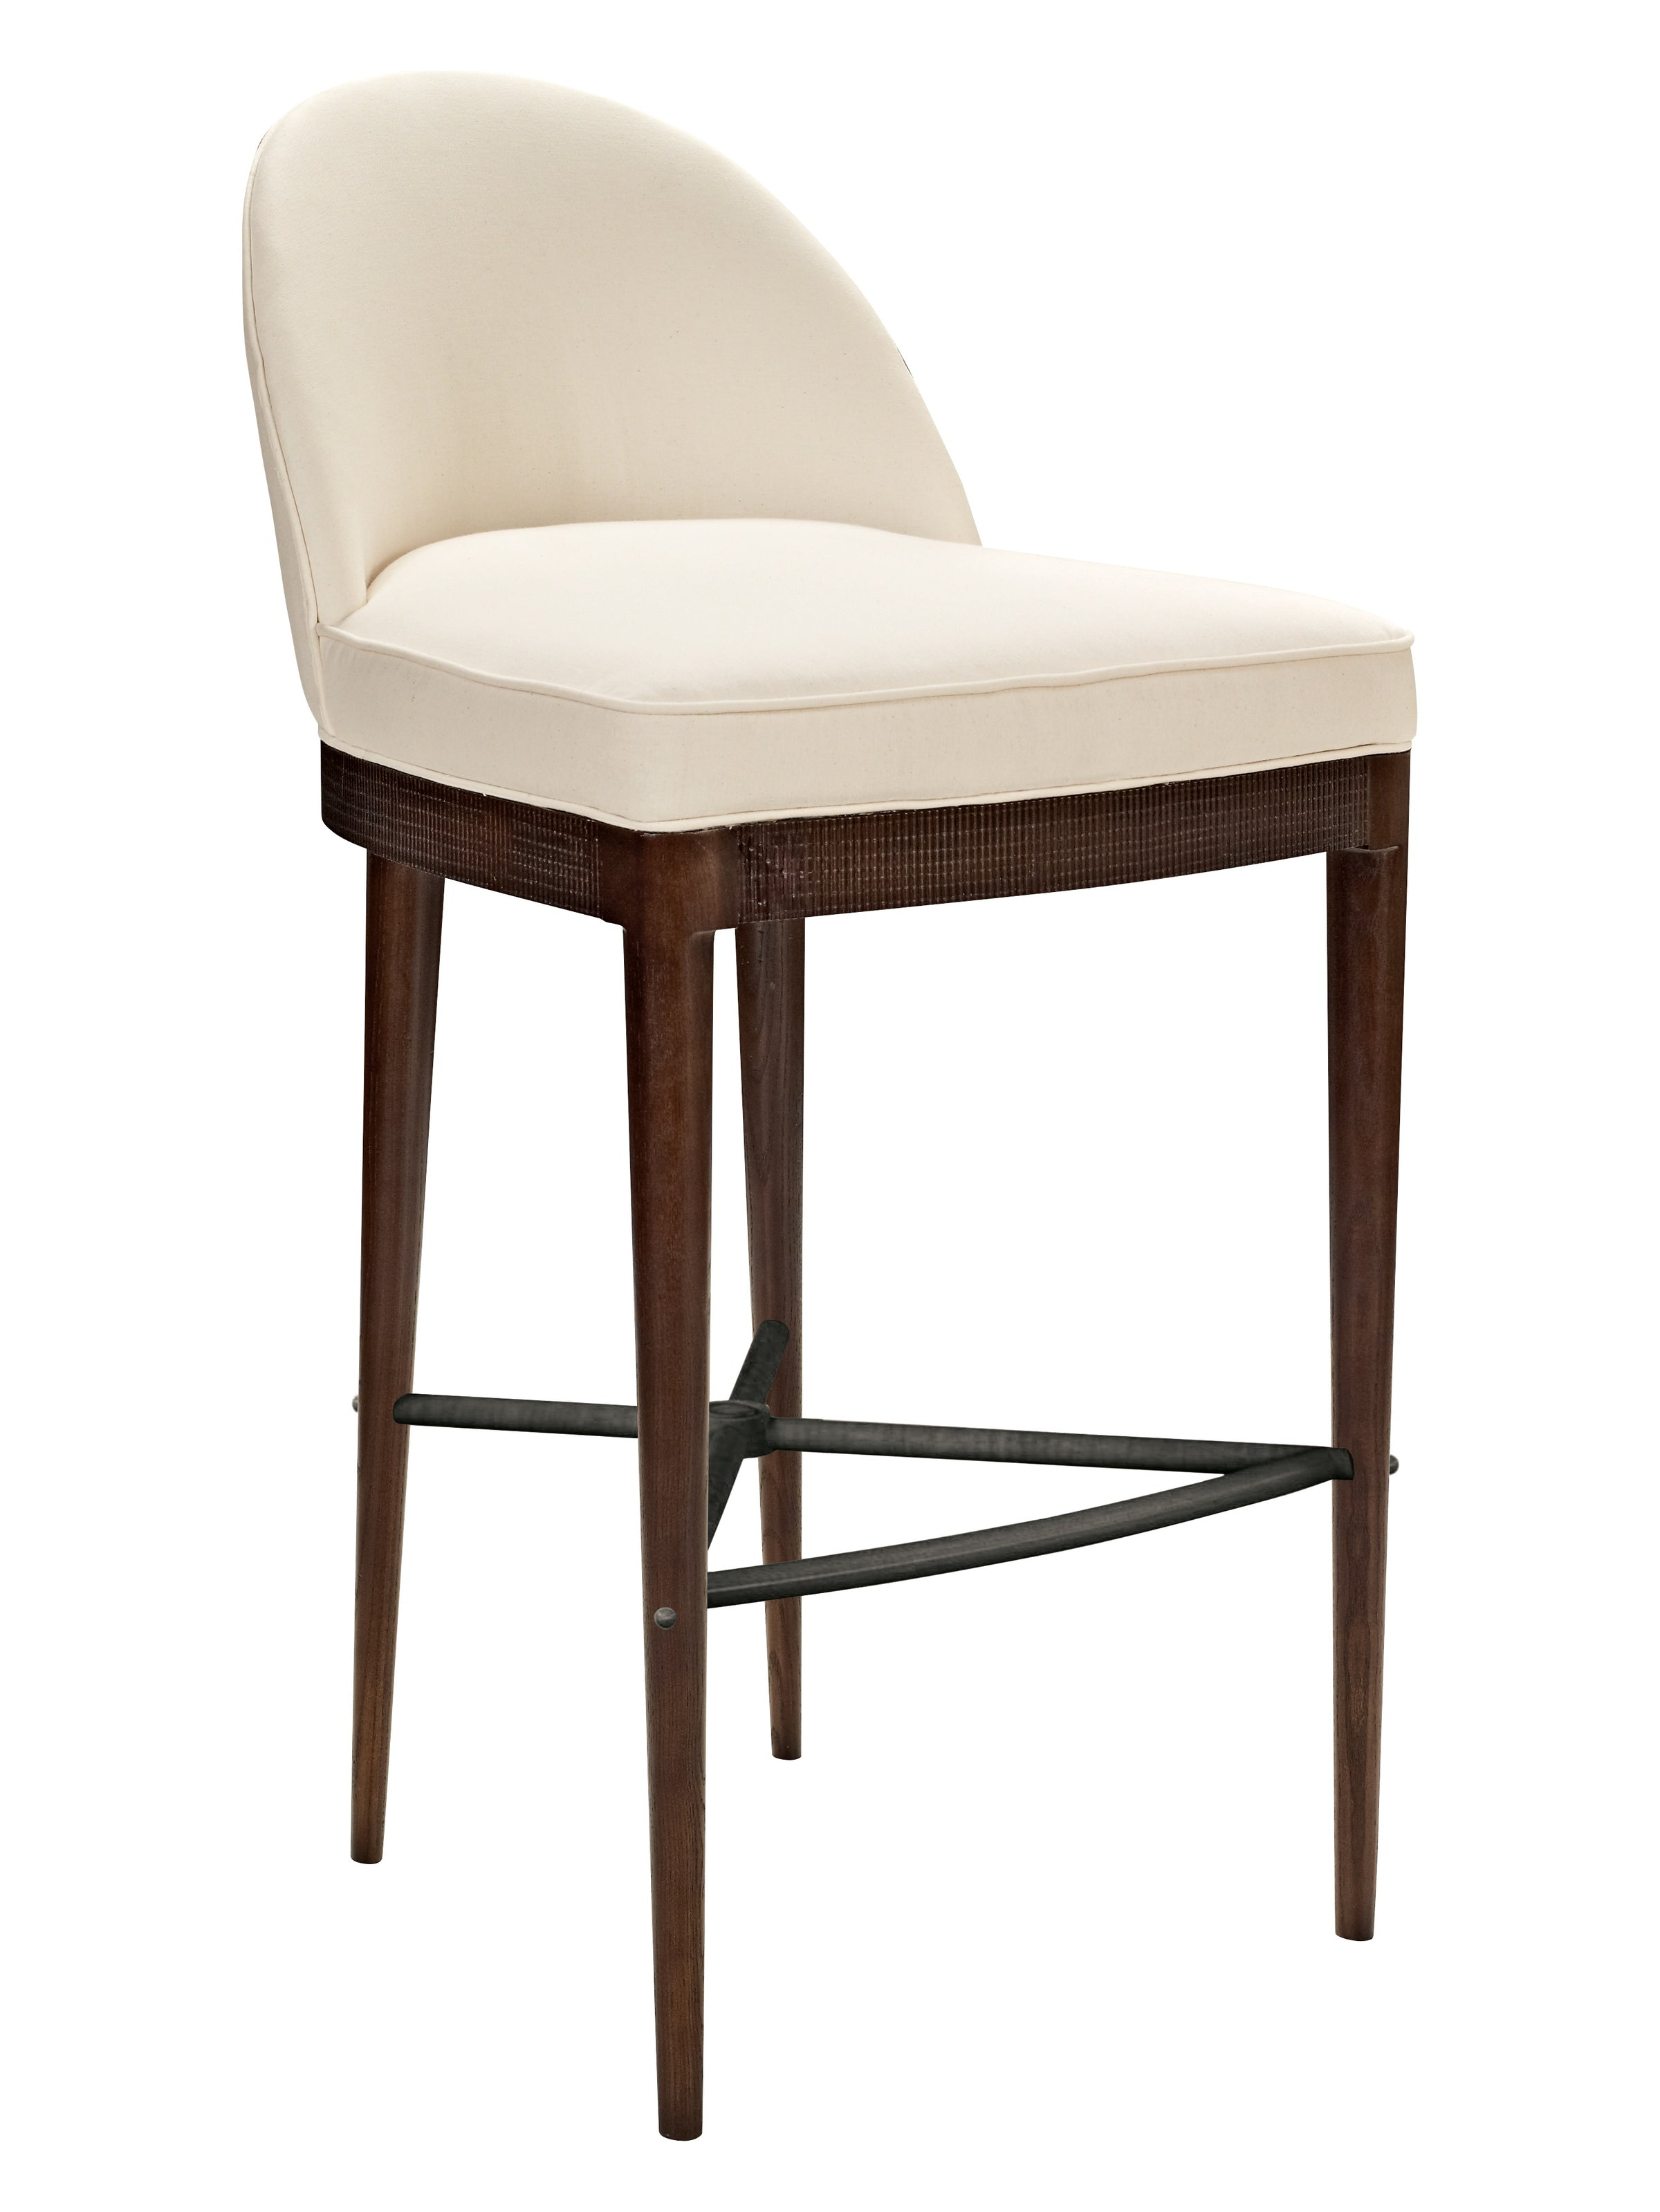 Wondrous Laurent Dining Chair Laura Kincade Australia Gmtry Best Dining Table And Chair Ideas Images Gmtryco